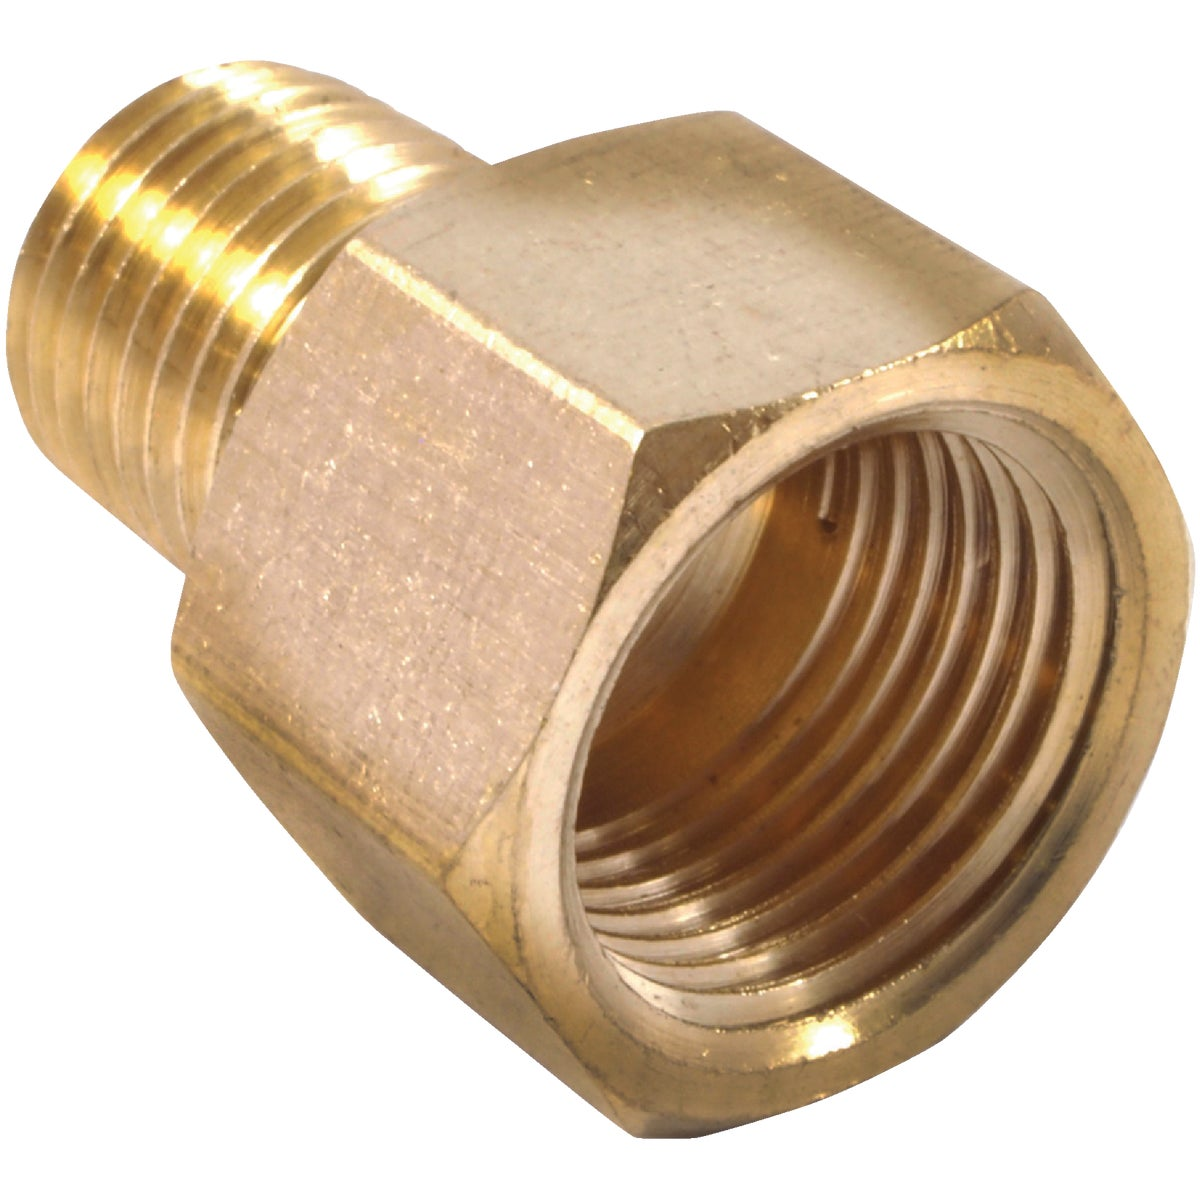 "3/8"" FNPT REDUCR ADAPTER - 75447 by Forney Industries"